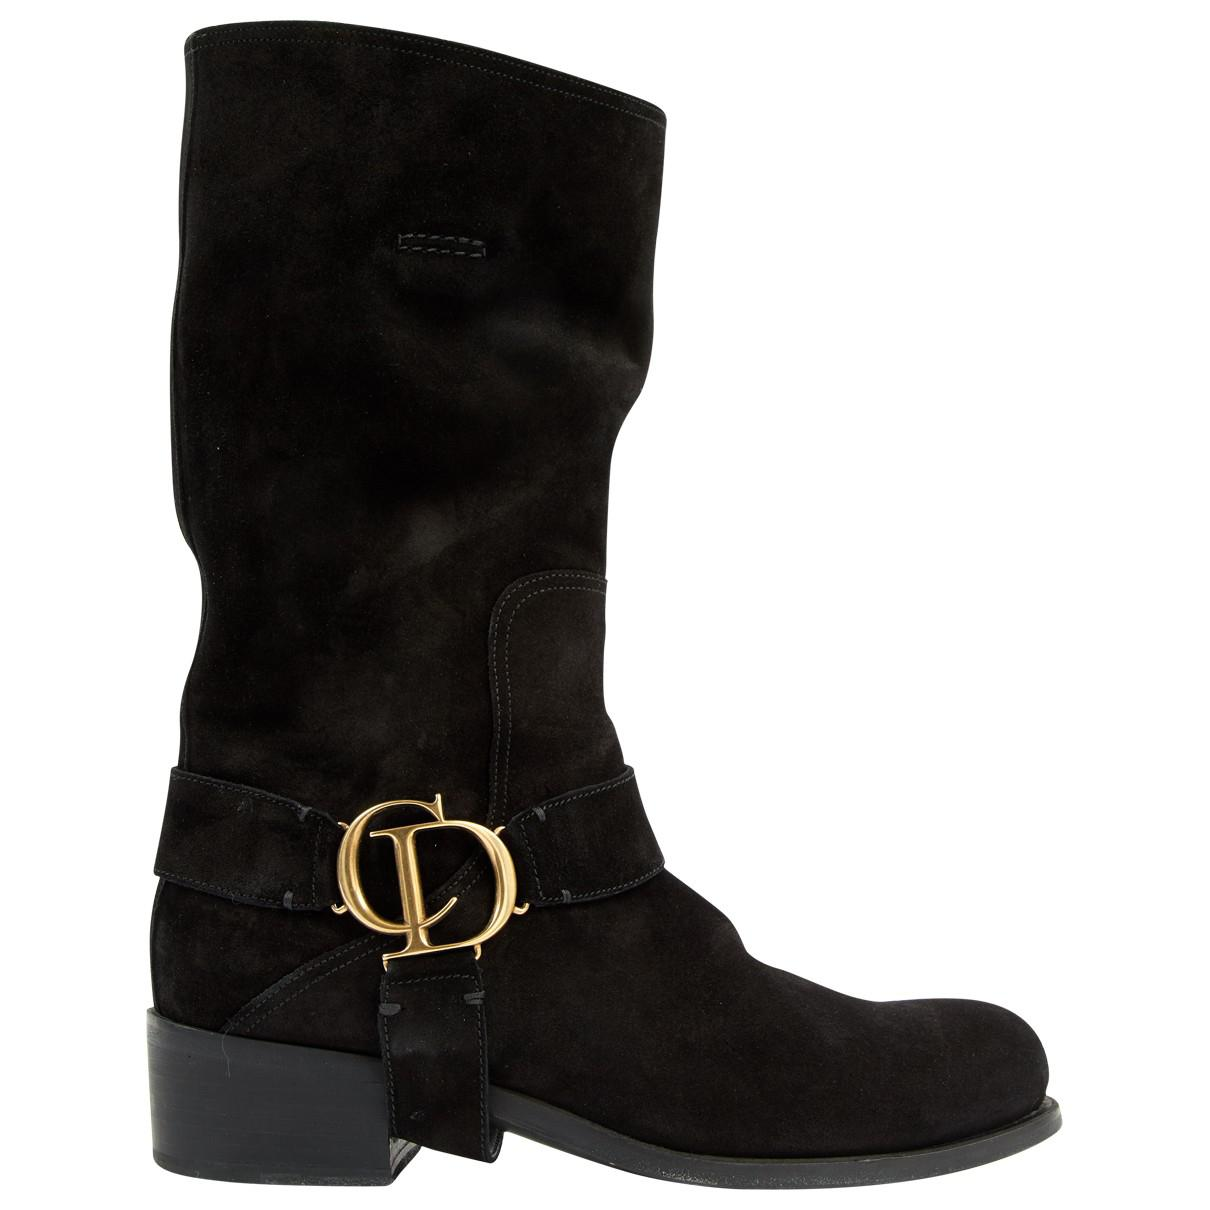 Pre-owned - Leather buckled boots Dior Cheap Order Cheap Sale Original Cheap Price 2018 Sale Online VObAYRb